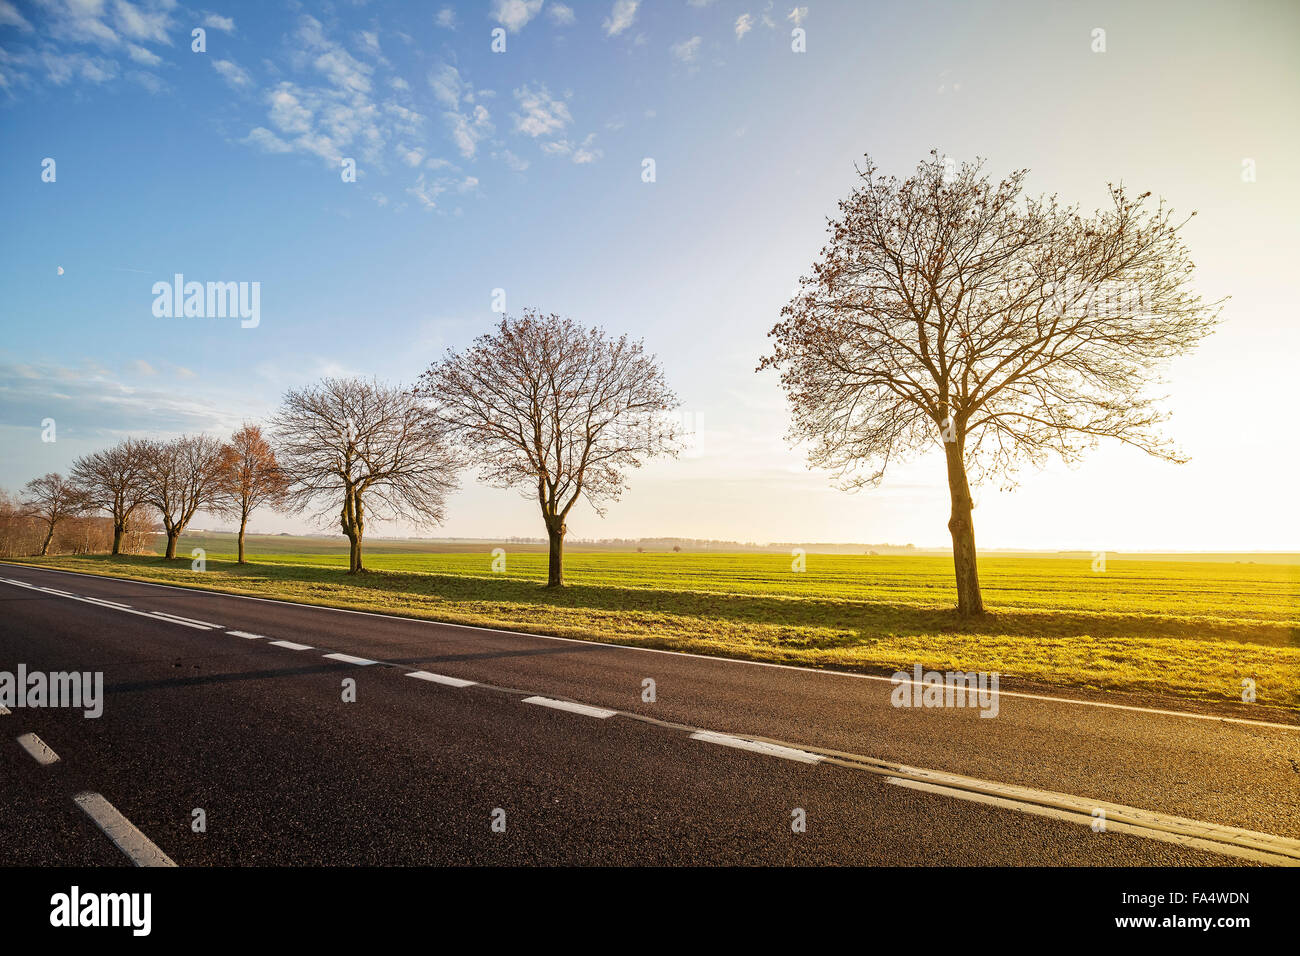 Empty countryside road with leafless trees at sunset. - Stock Image